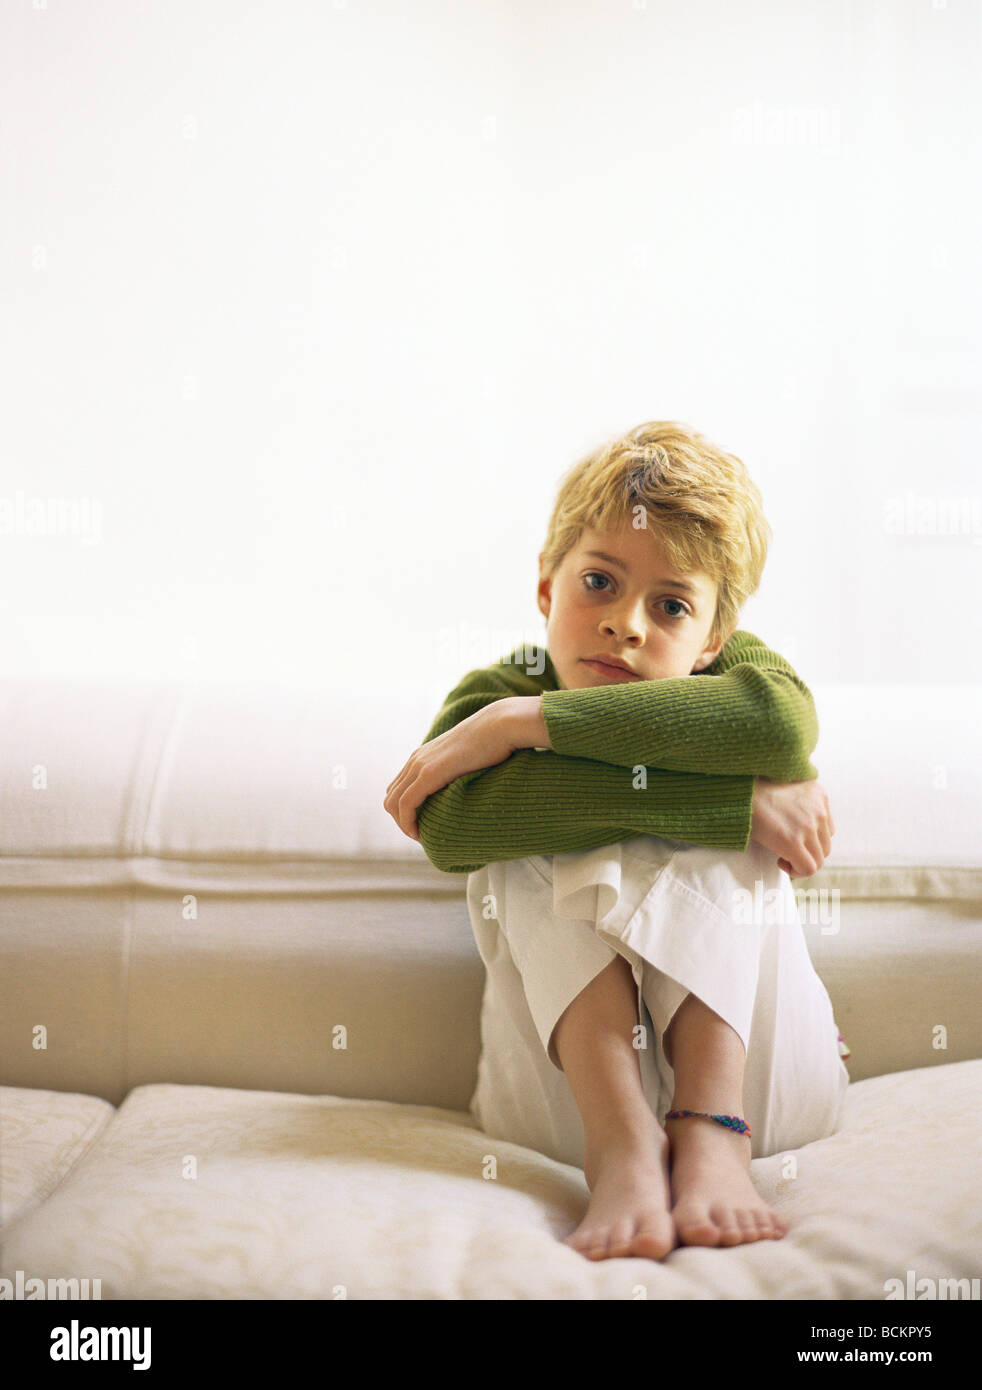 Girl Sitting On Sofa With Knees Up And Arms Folded Stock Photo